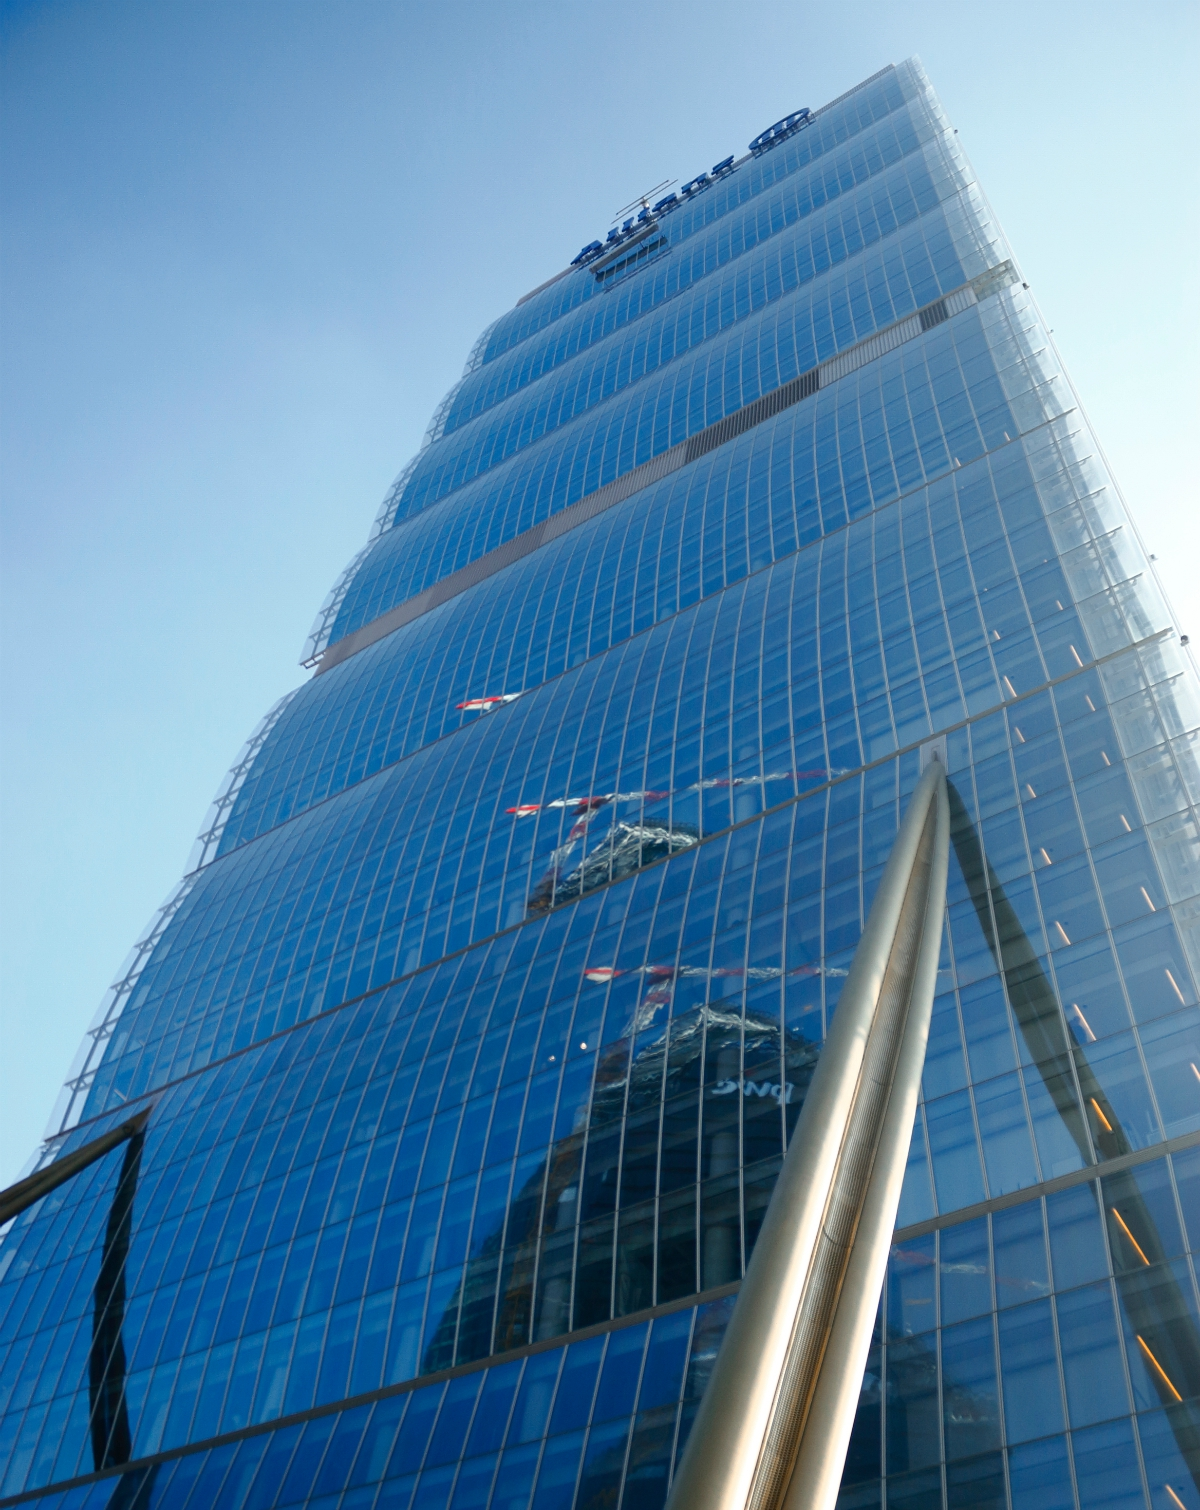 Allianz Tower – Milan